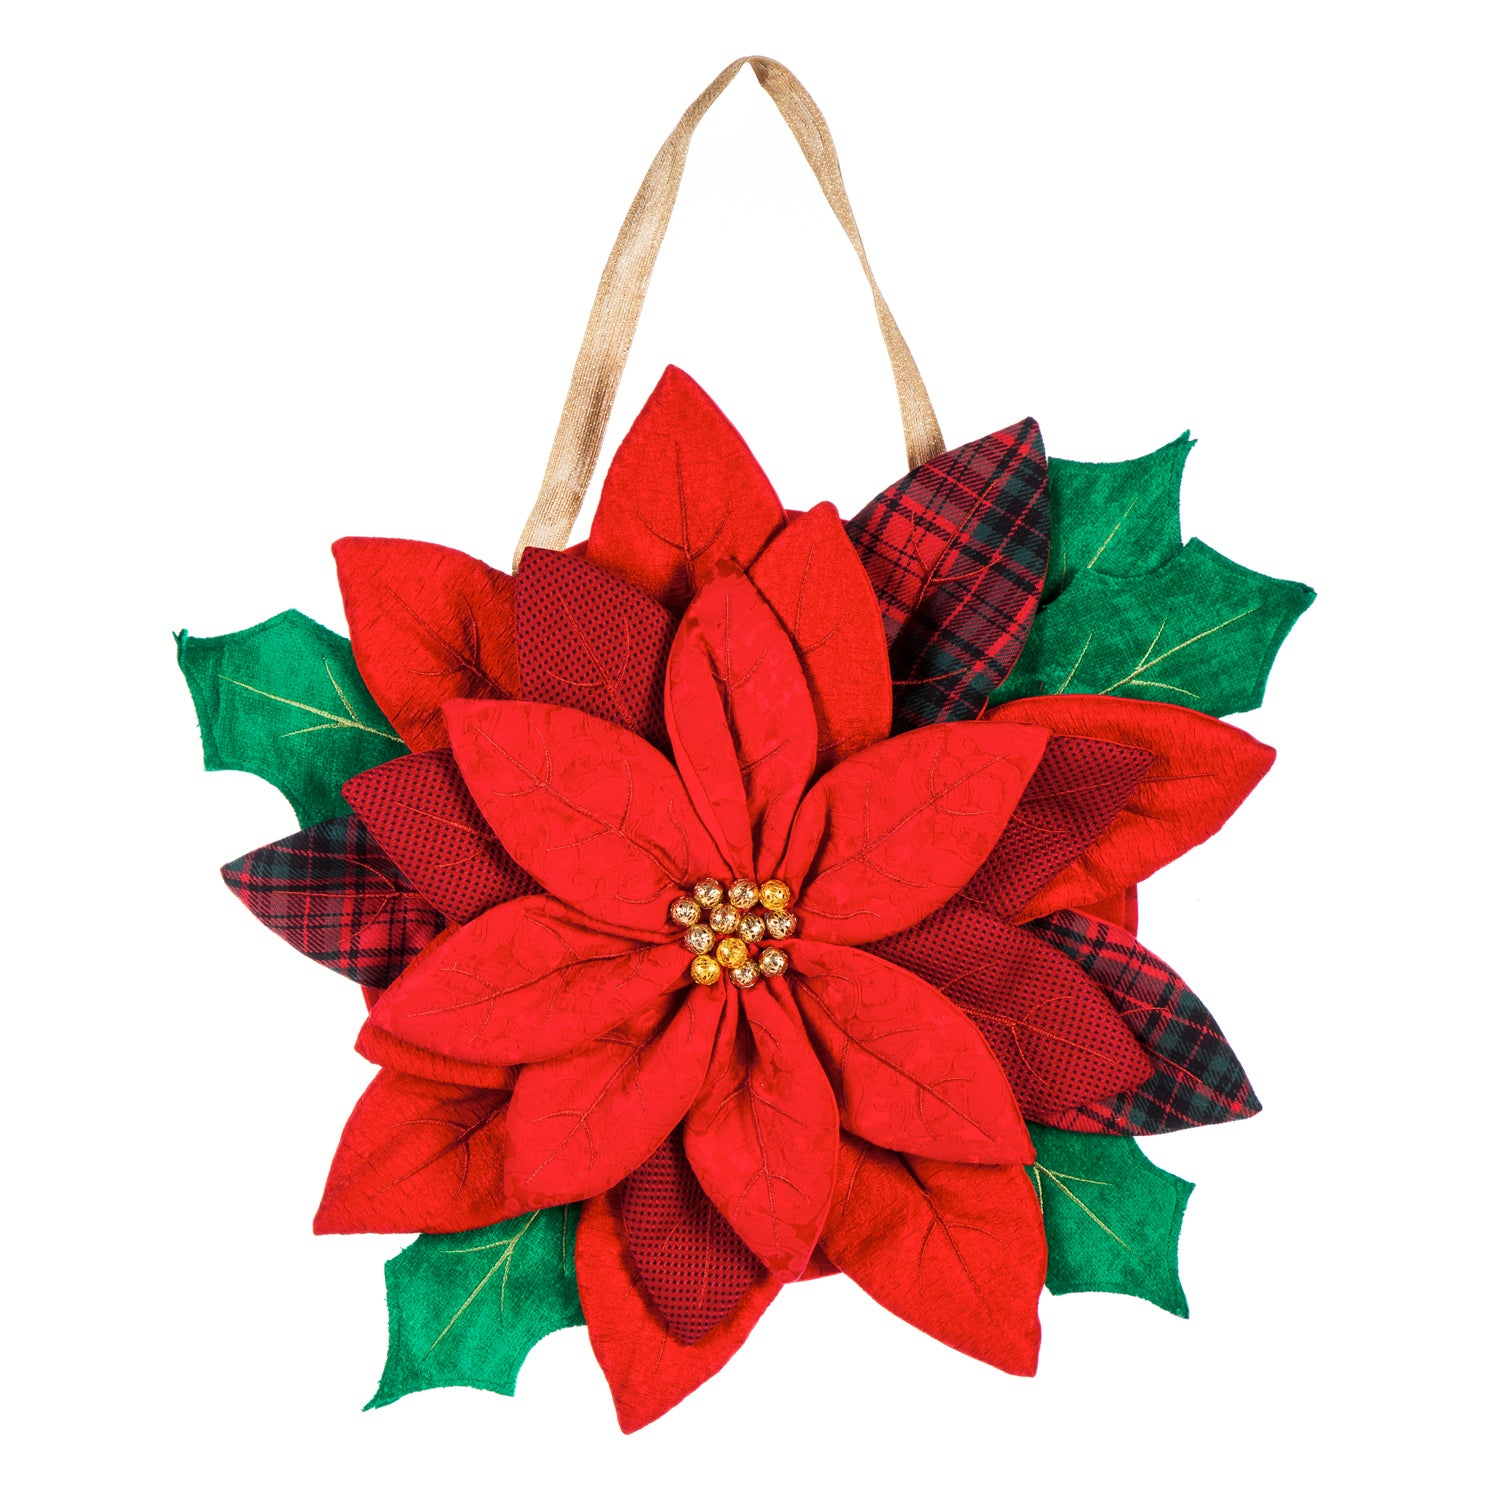 Winter Poinsettia Burlap Door Decor